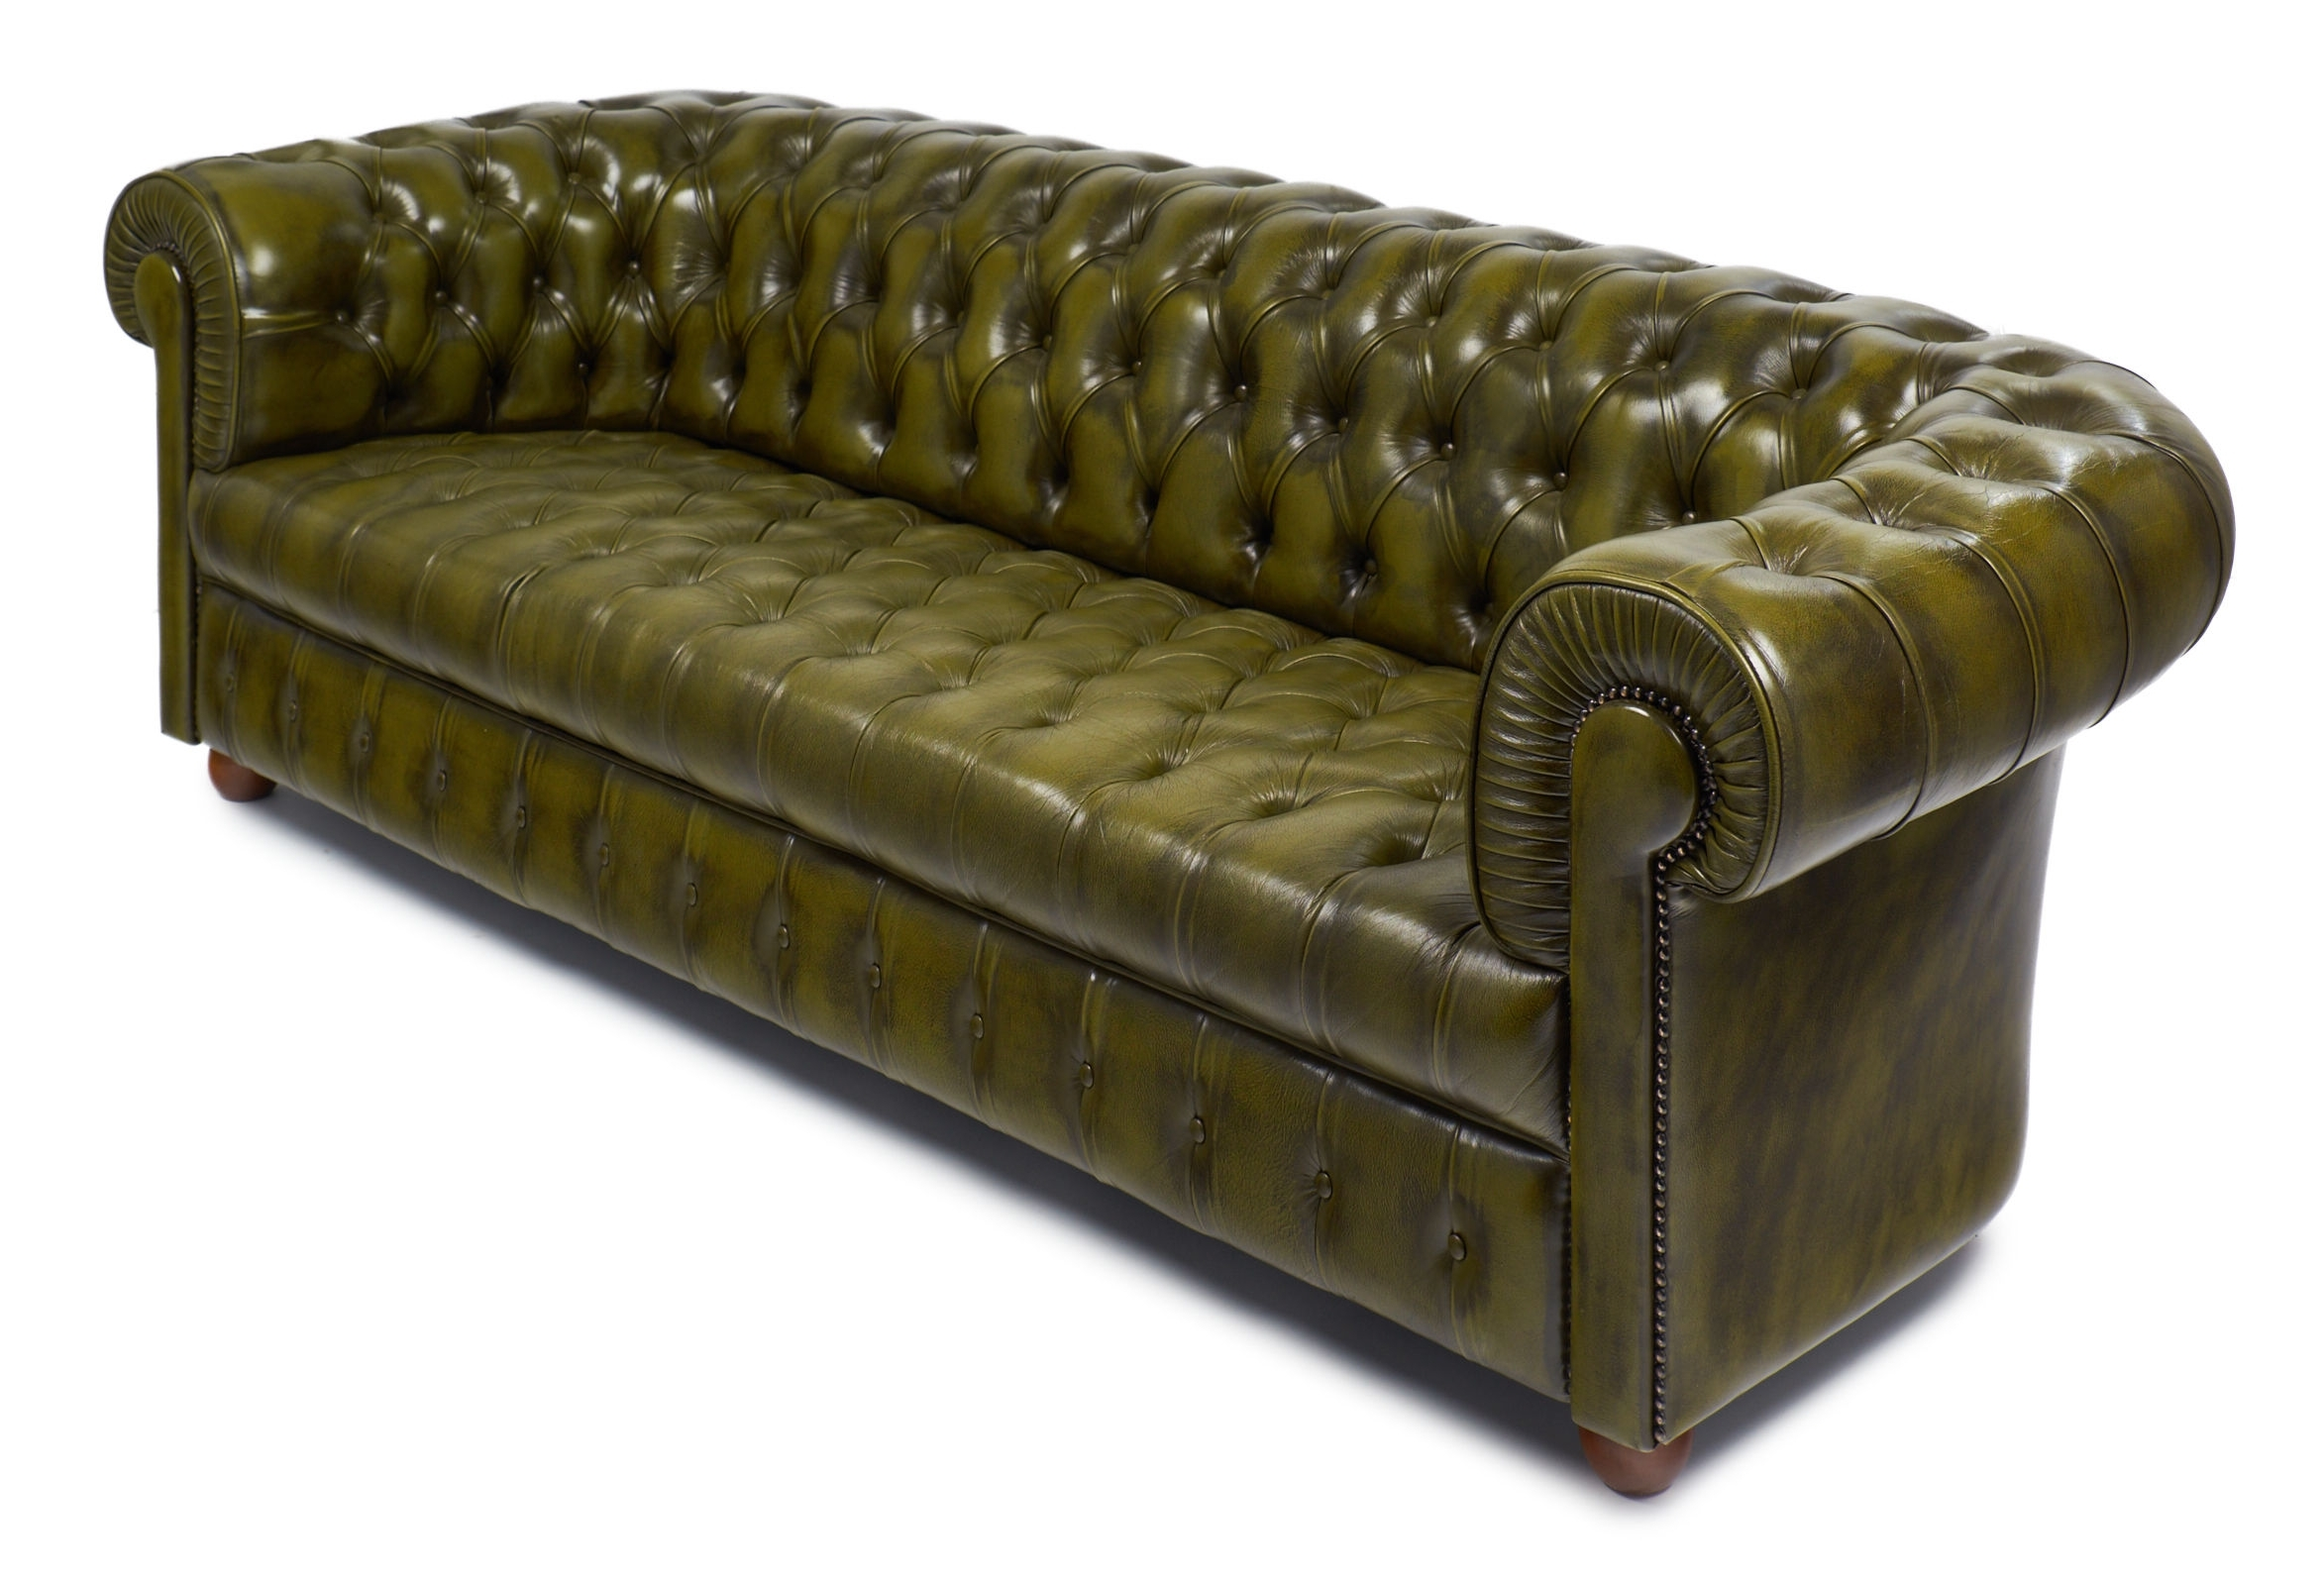 Vintage Green Leather English Chesterfield Sofa – Jean Marc Fray For Famous Vintage Chesterfield Sofas (View 8 of 20)